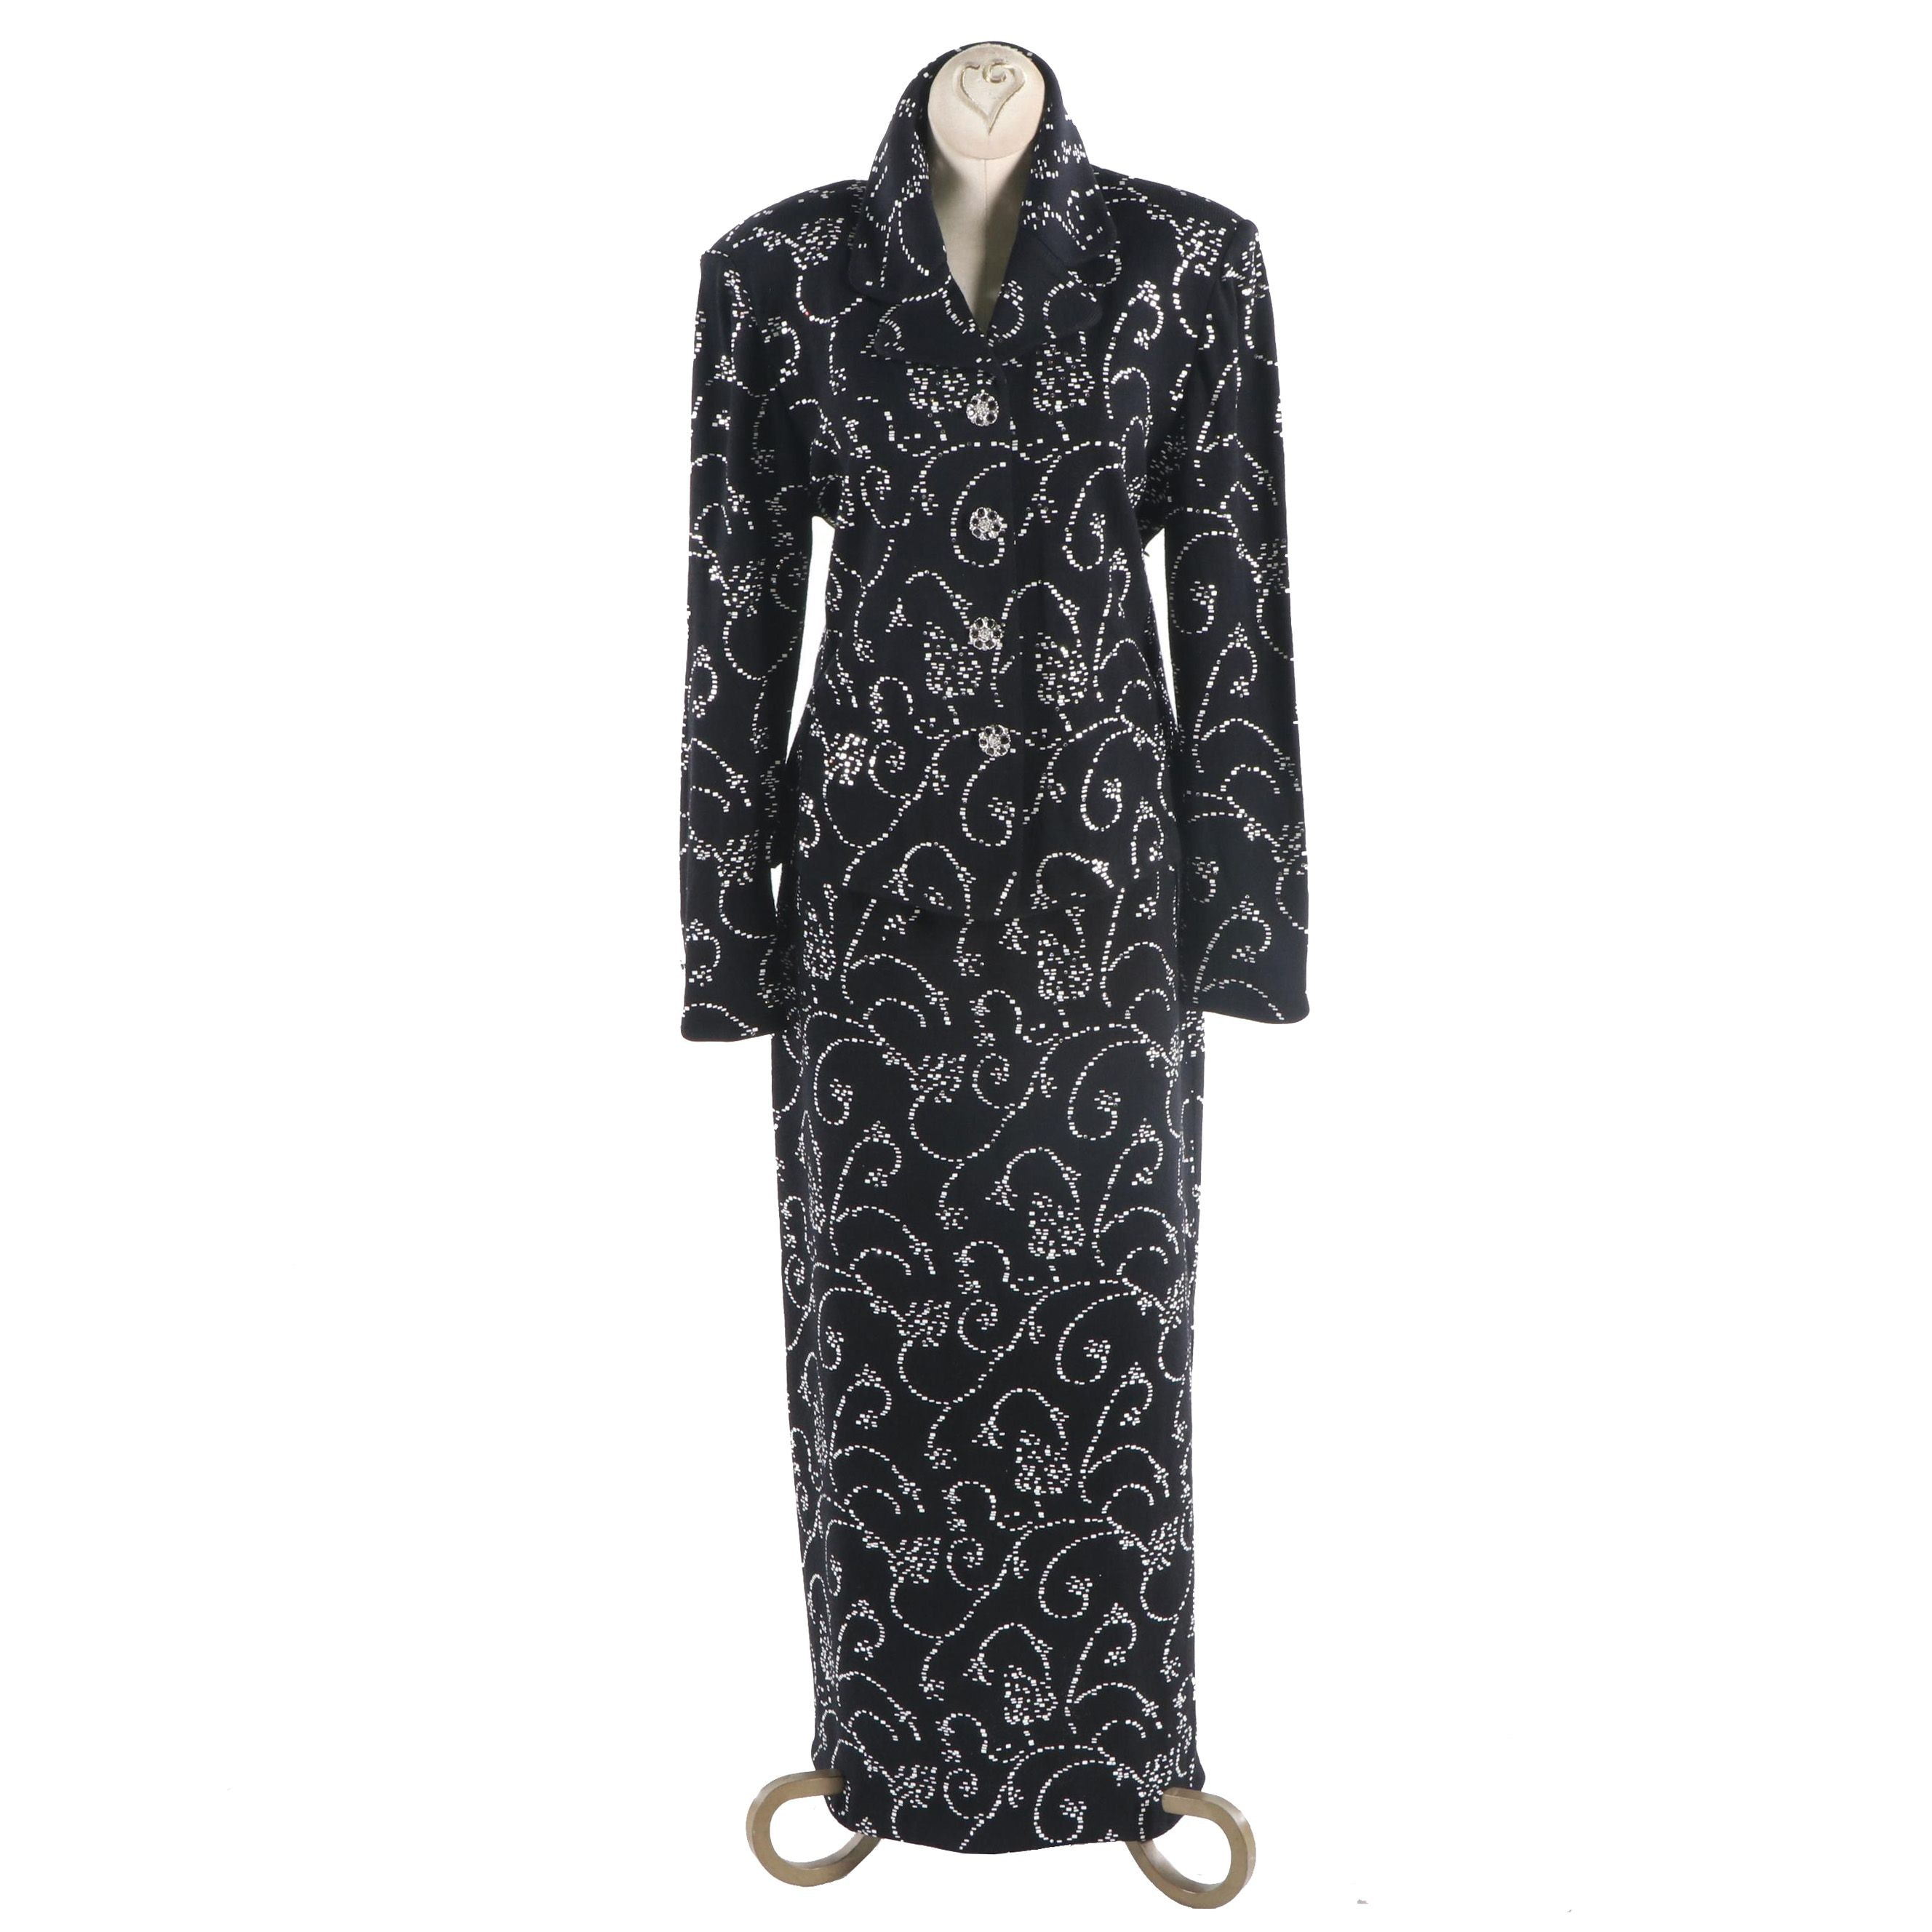 St. John Couture Embellished Black Knit Evening Skirt Suit with Scrolls